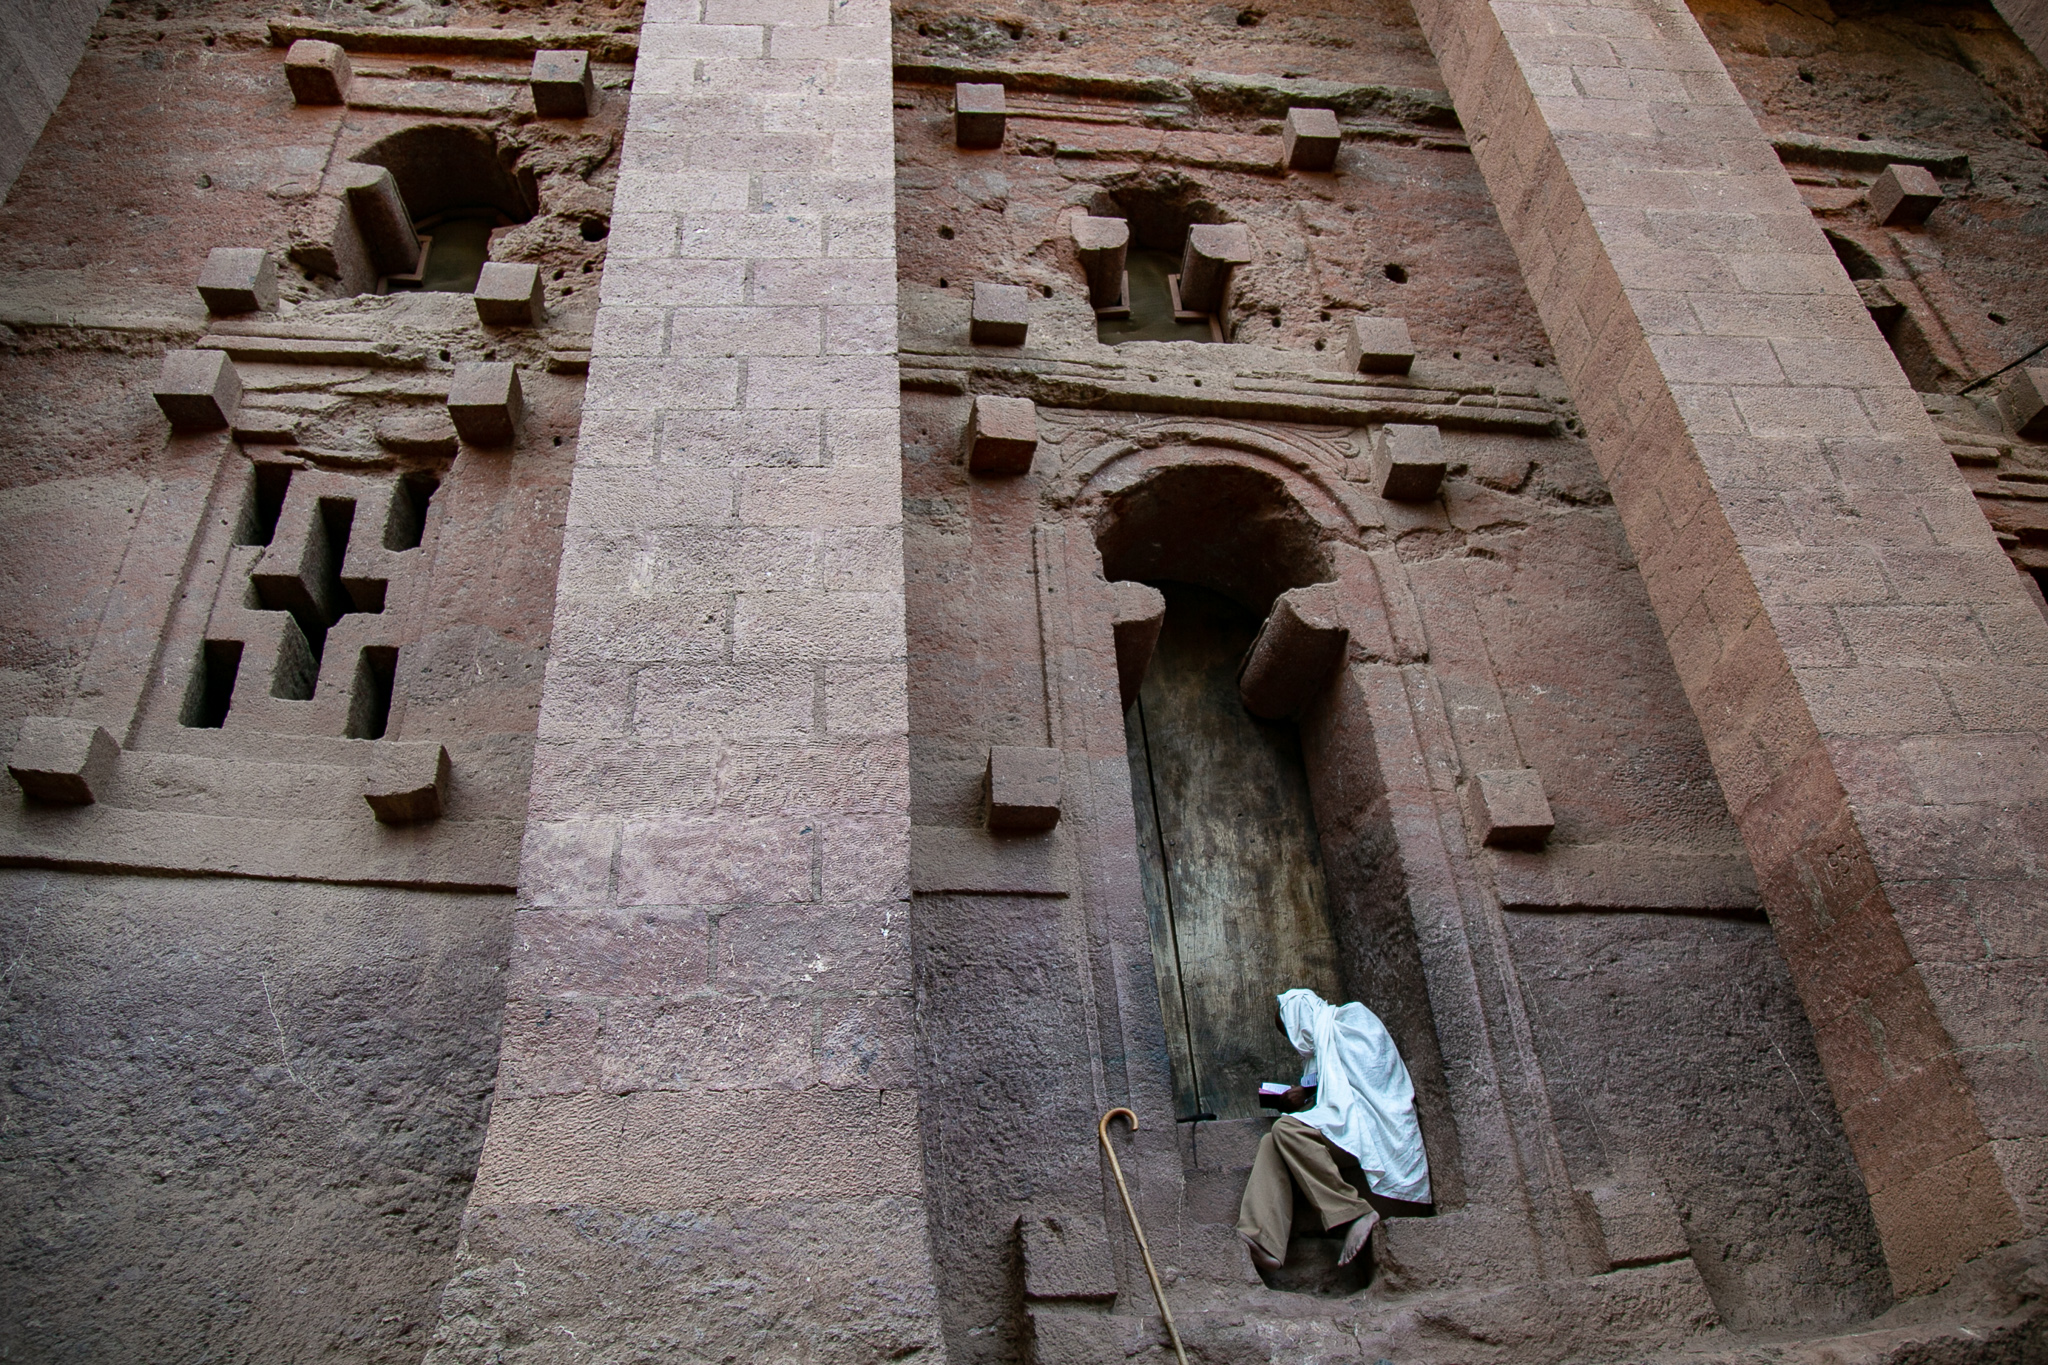 An Ethiopian Orthodox monk quietly reads outside an ancient rock-hewn church in Lalibela, Ethiopia © Kim I. Mott, all rights reserved